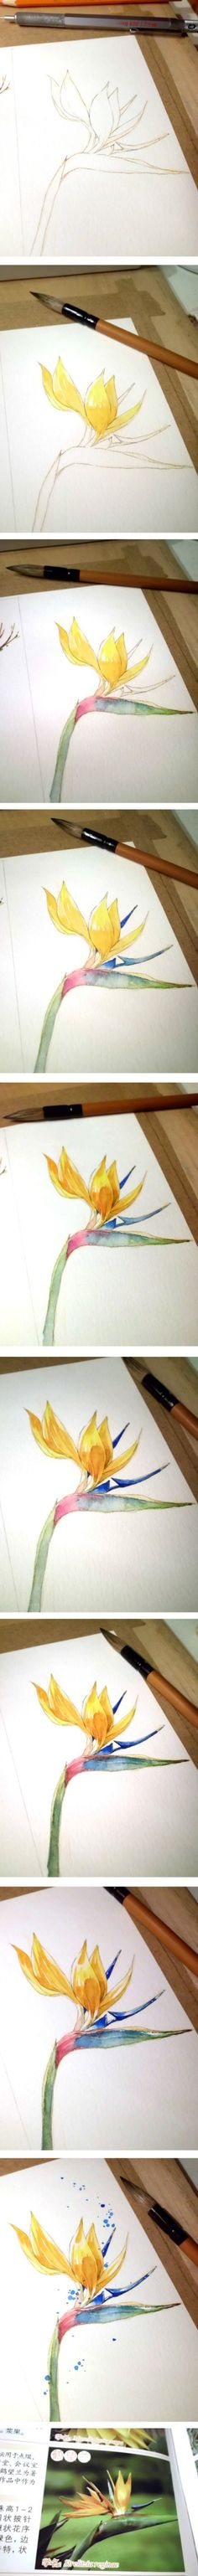 Yellow flower step by step watercolor painting. (Drawing Step Pencil)